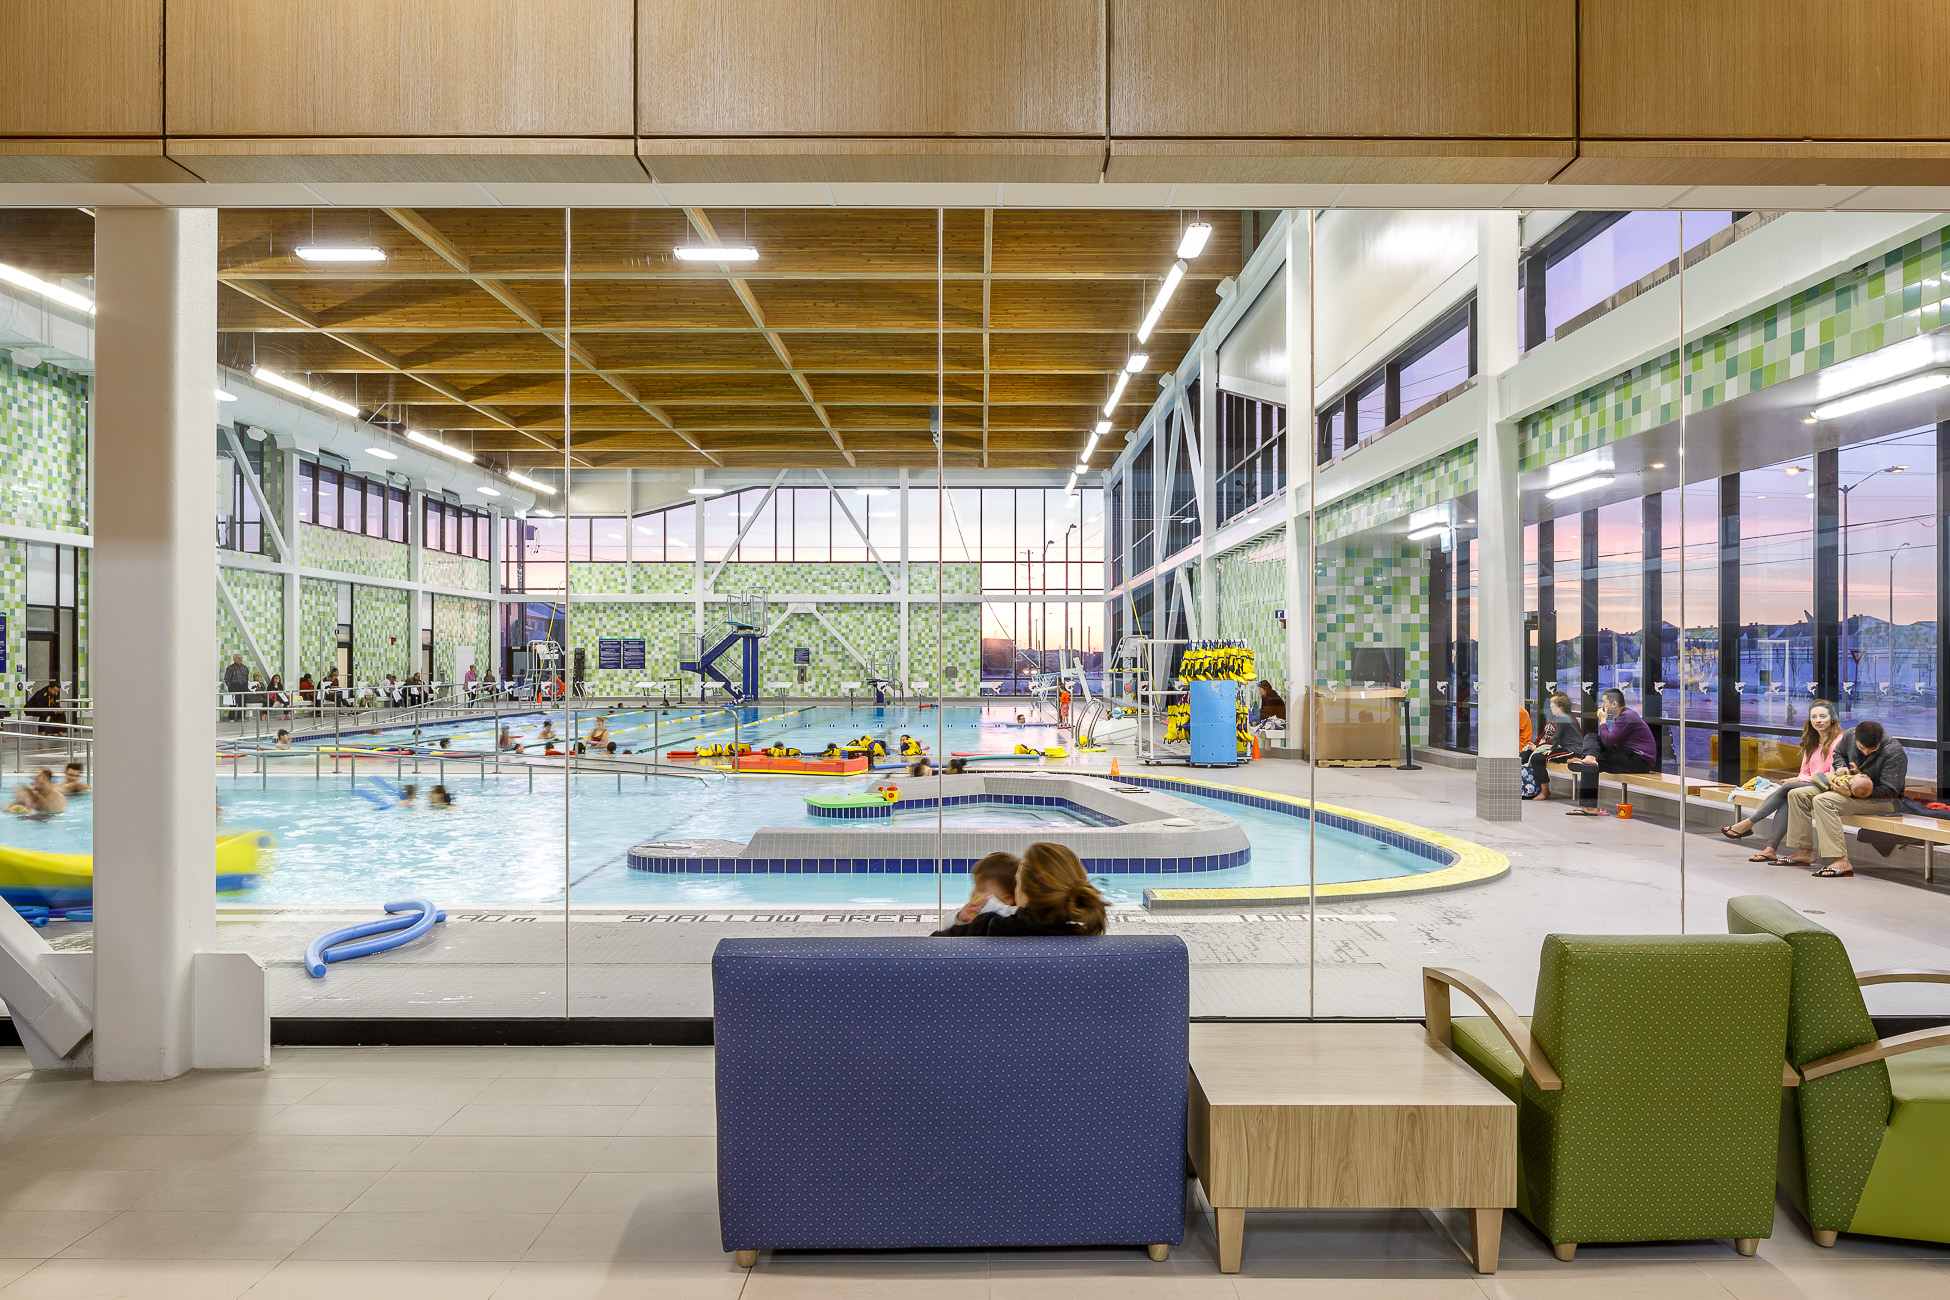 Perkins_Will_Barrhave_Rec_Centre_doublespace_architecture_photography-438